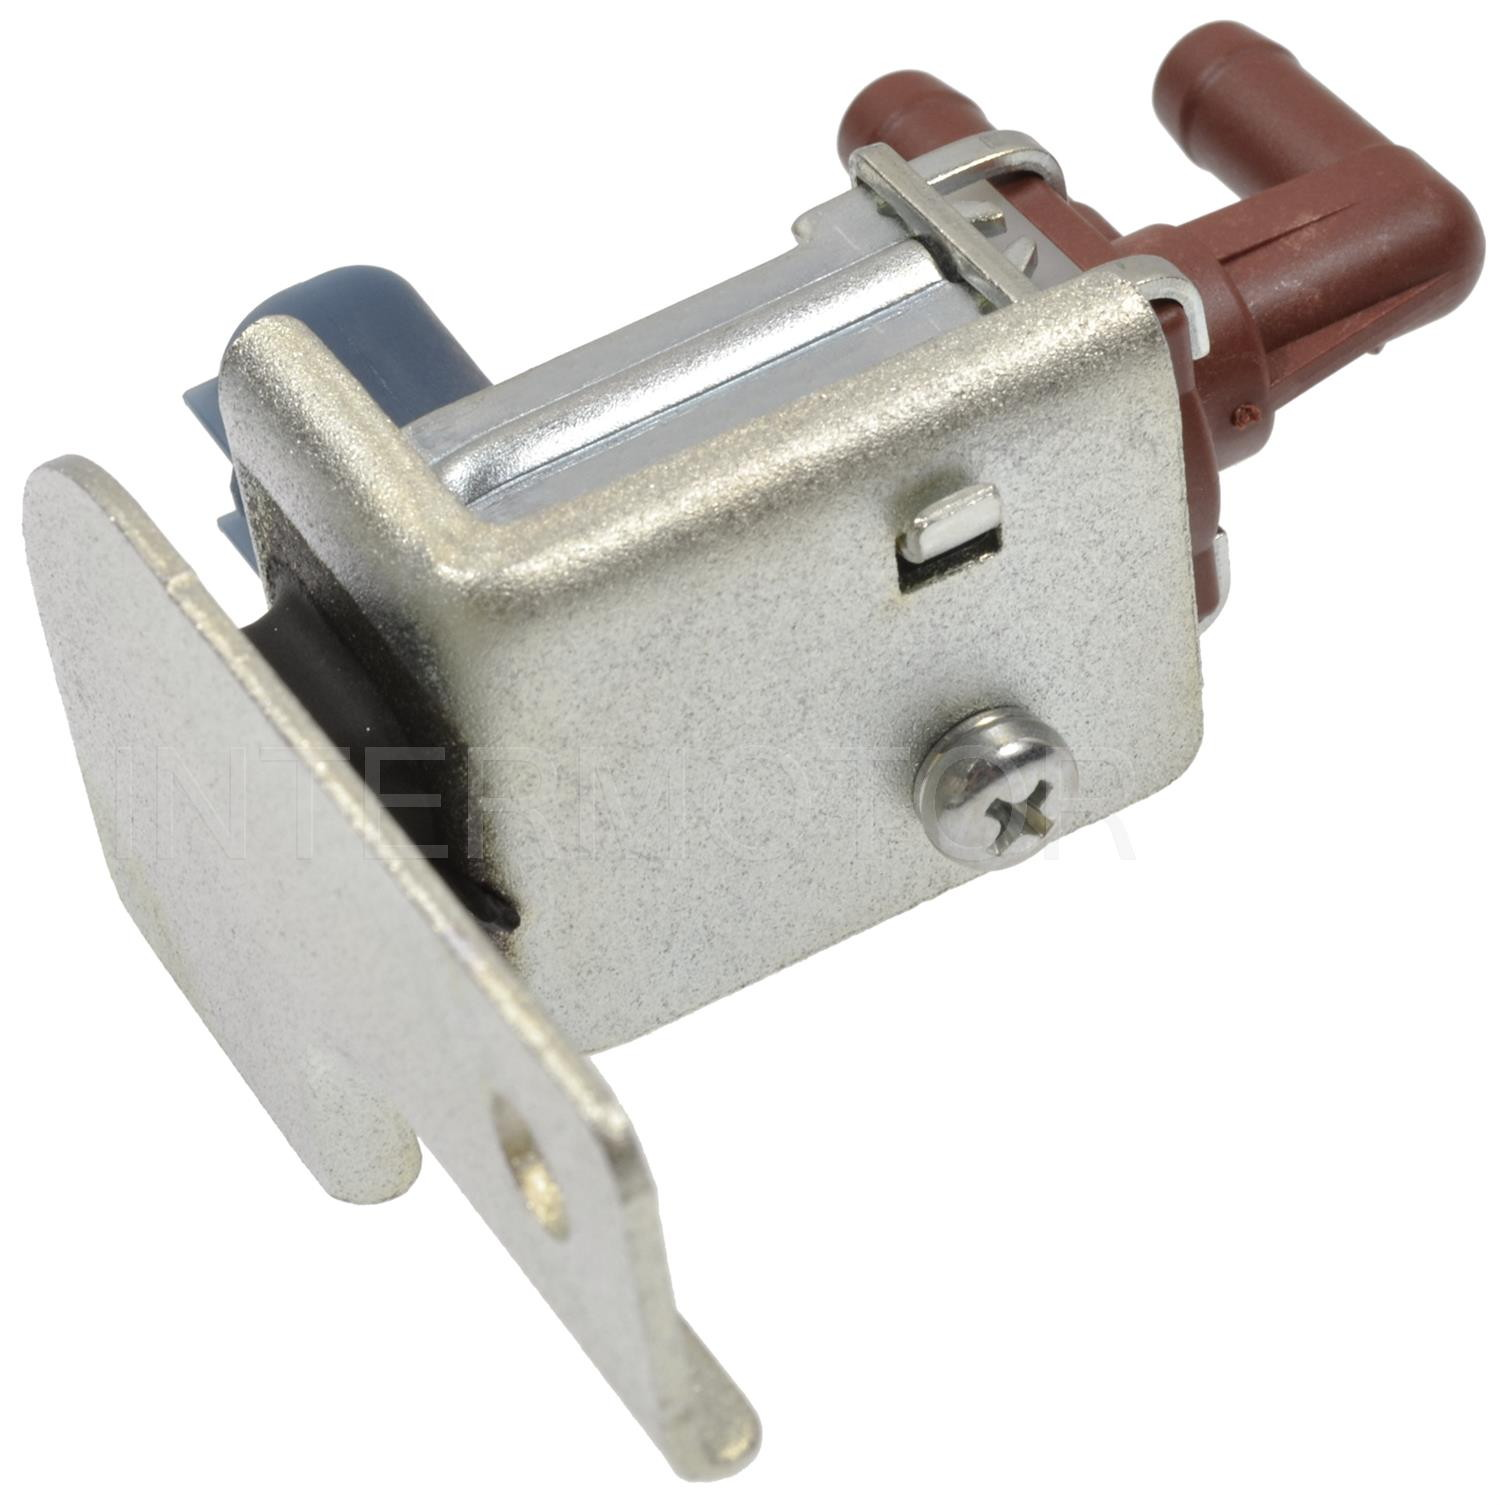 2000 Toyota Corolla Vapor Canister Purge Solenoid Standard CP709